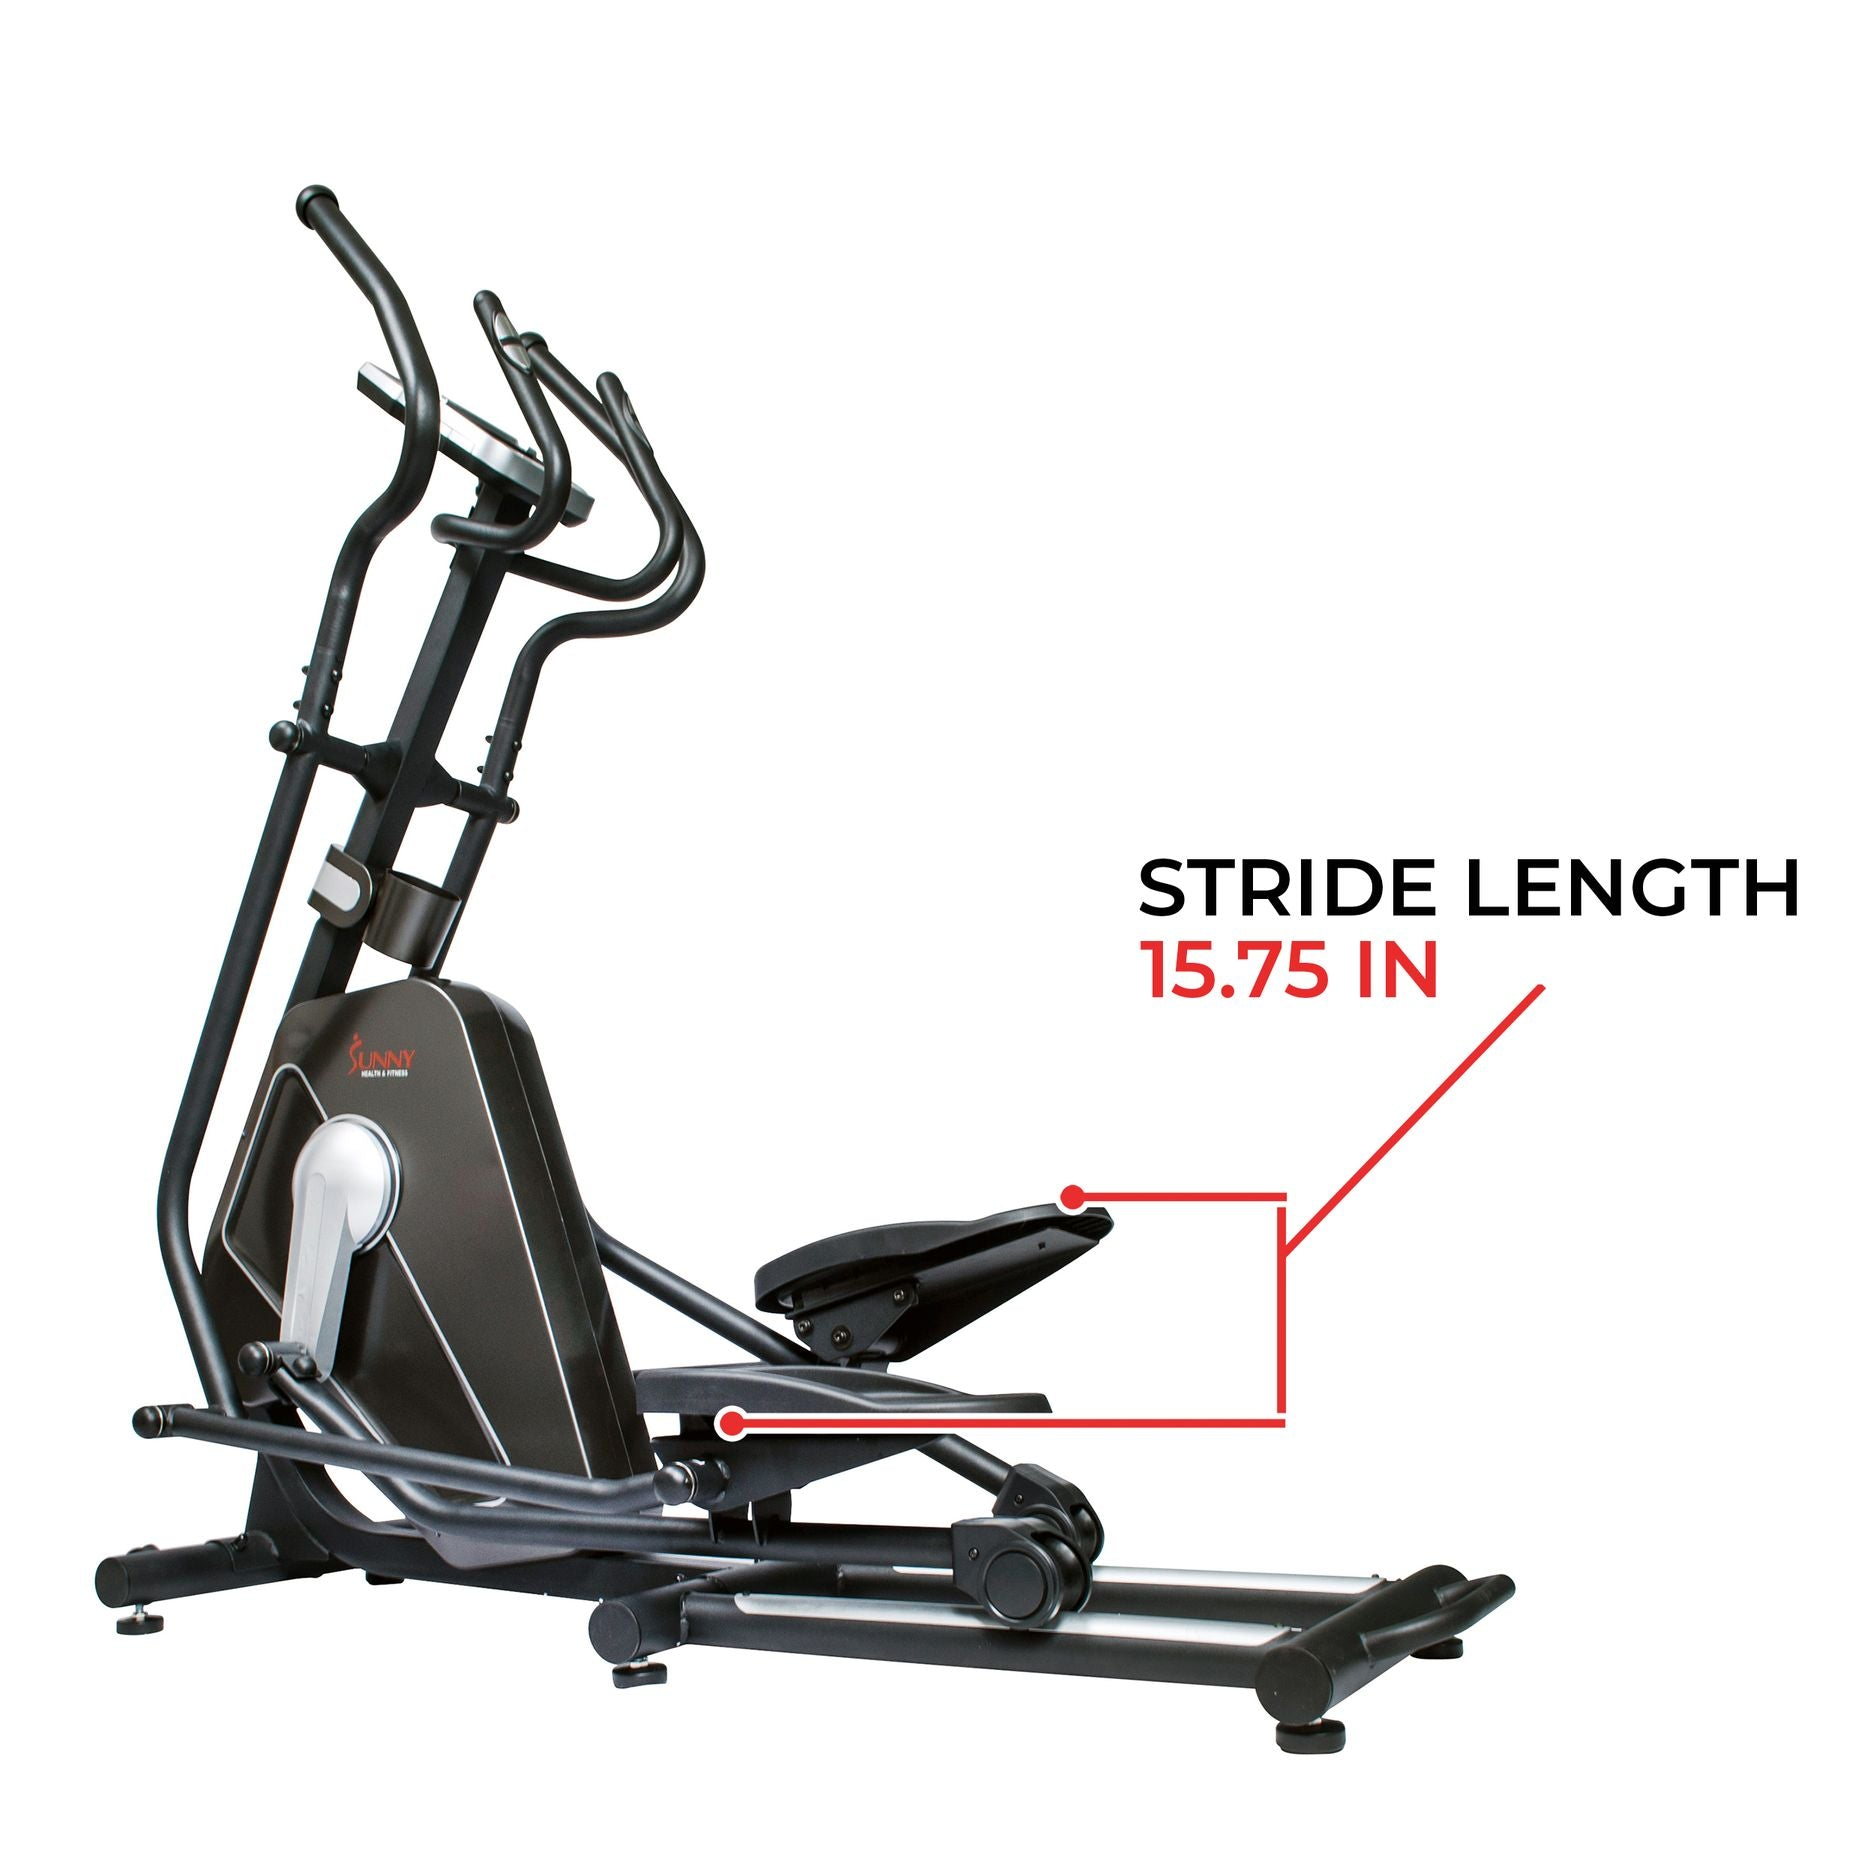 sunny-health-fitness-ellipticals-magnetic-elliptical-machine-tablet-holder-LCD-monitor-heart-rate-monitoring-circuit-zonw-SF-E3862-stride